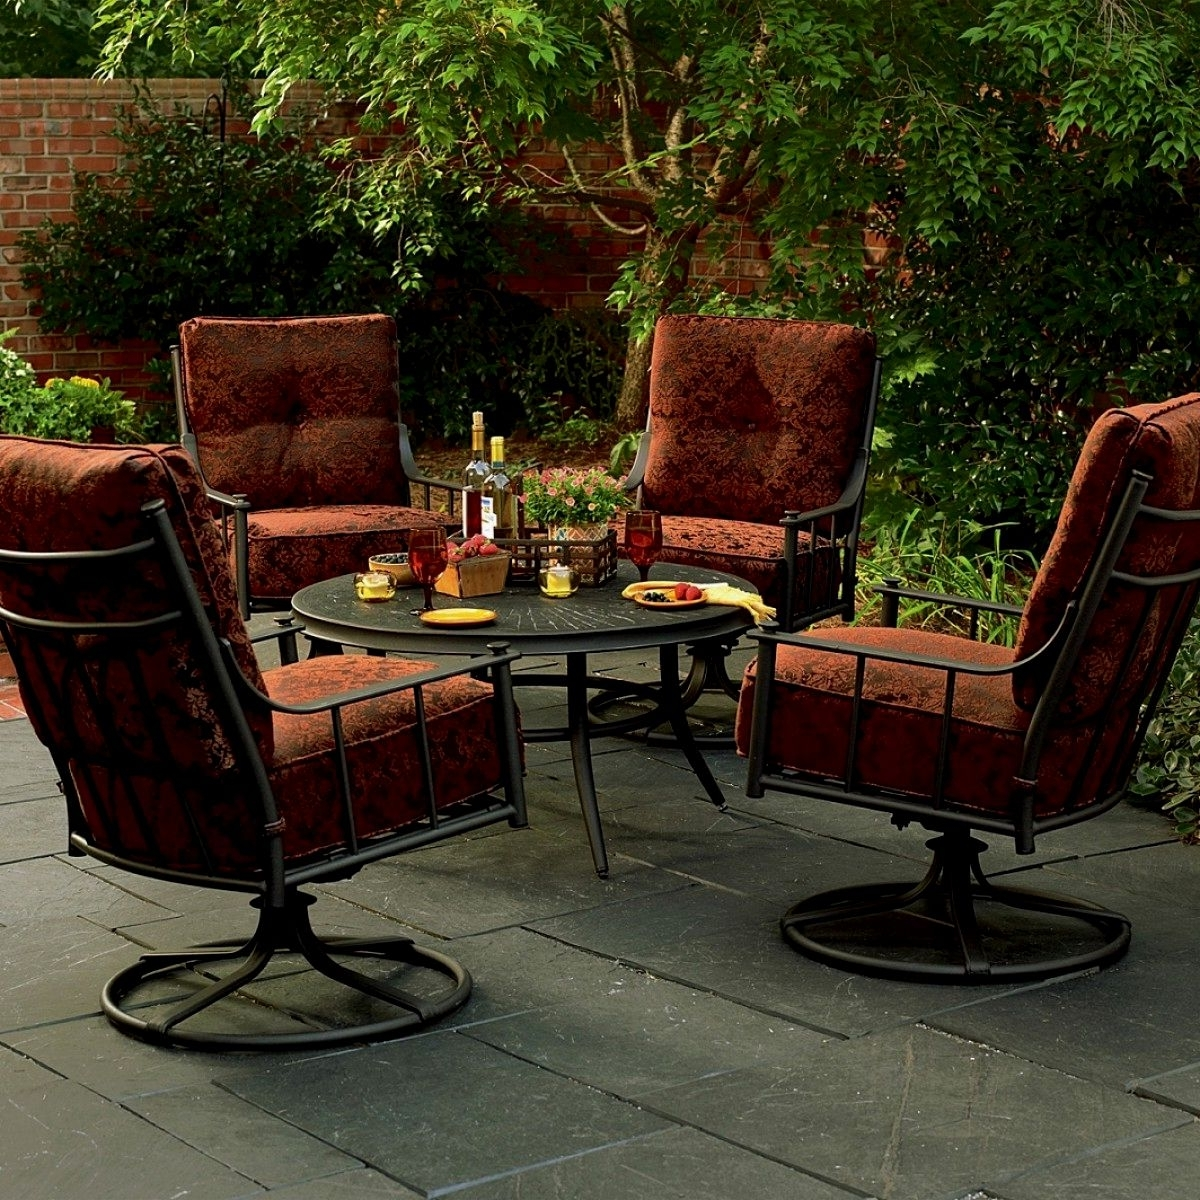 Most Recently Released Patio Conversation Sets Under 200 In Lovely Cheap Patio Furniture Sets Under 200 Image (View 8 of 15)